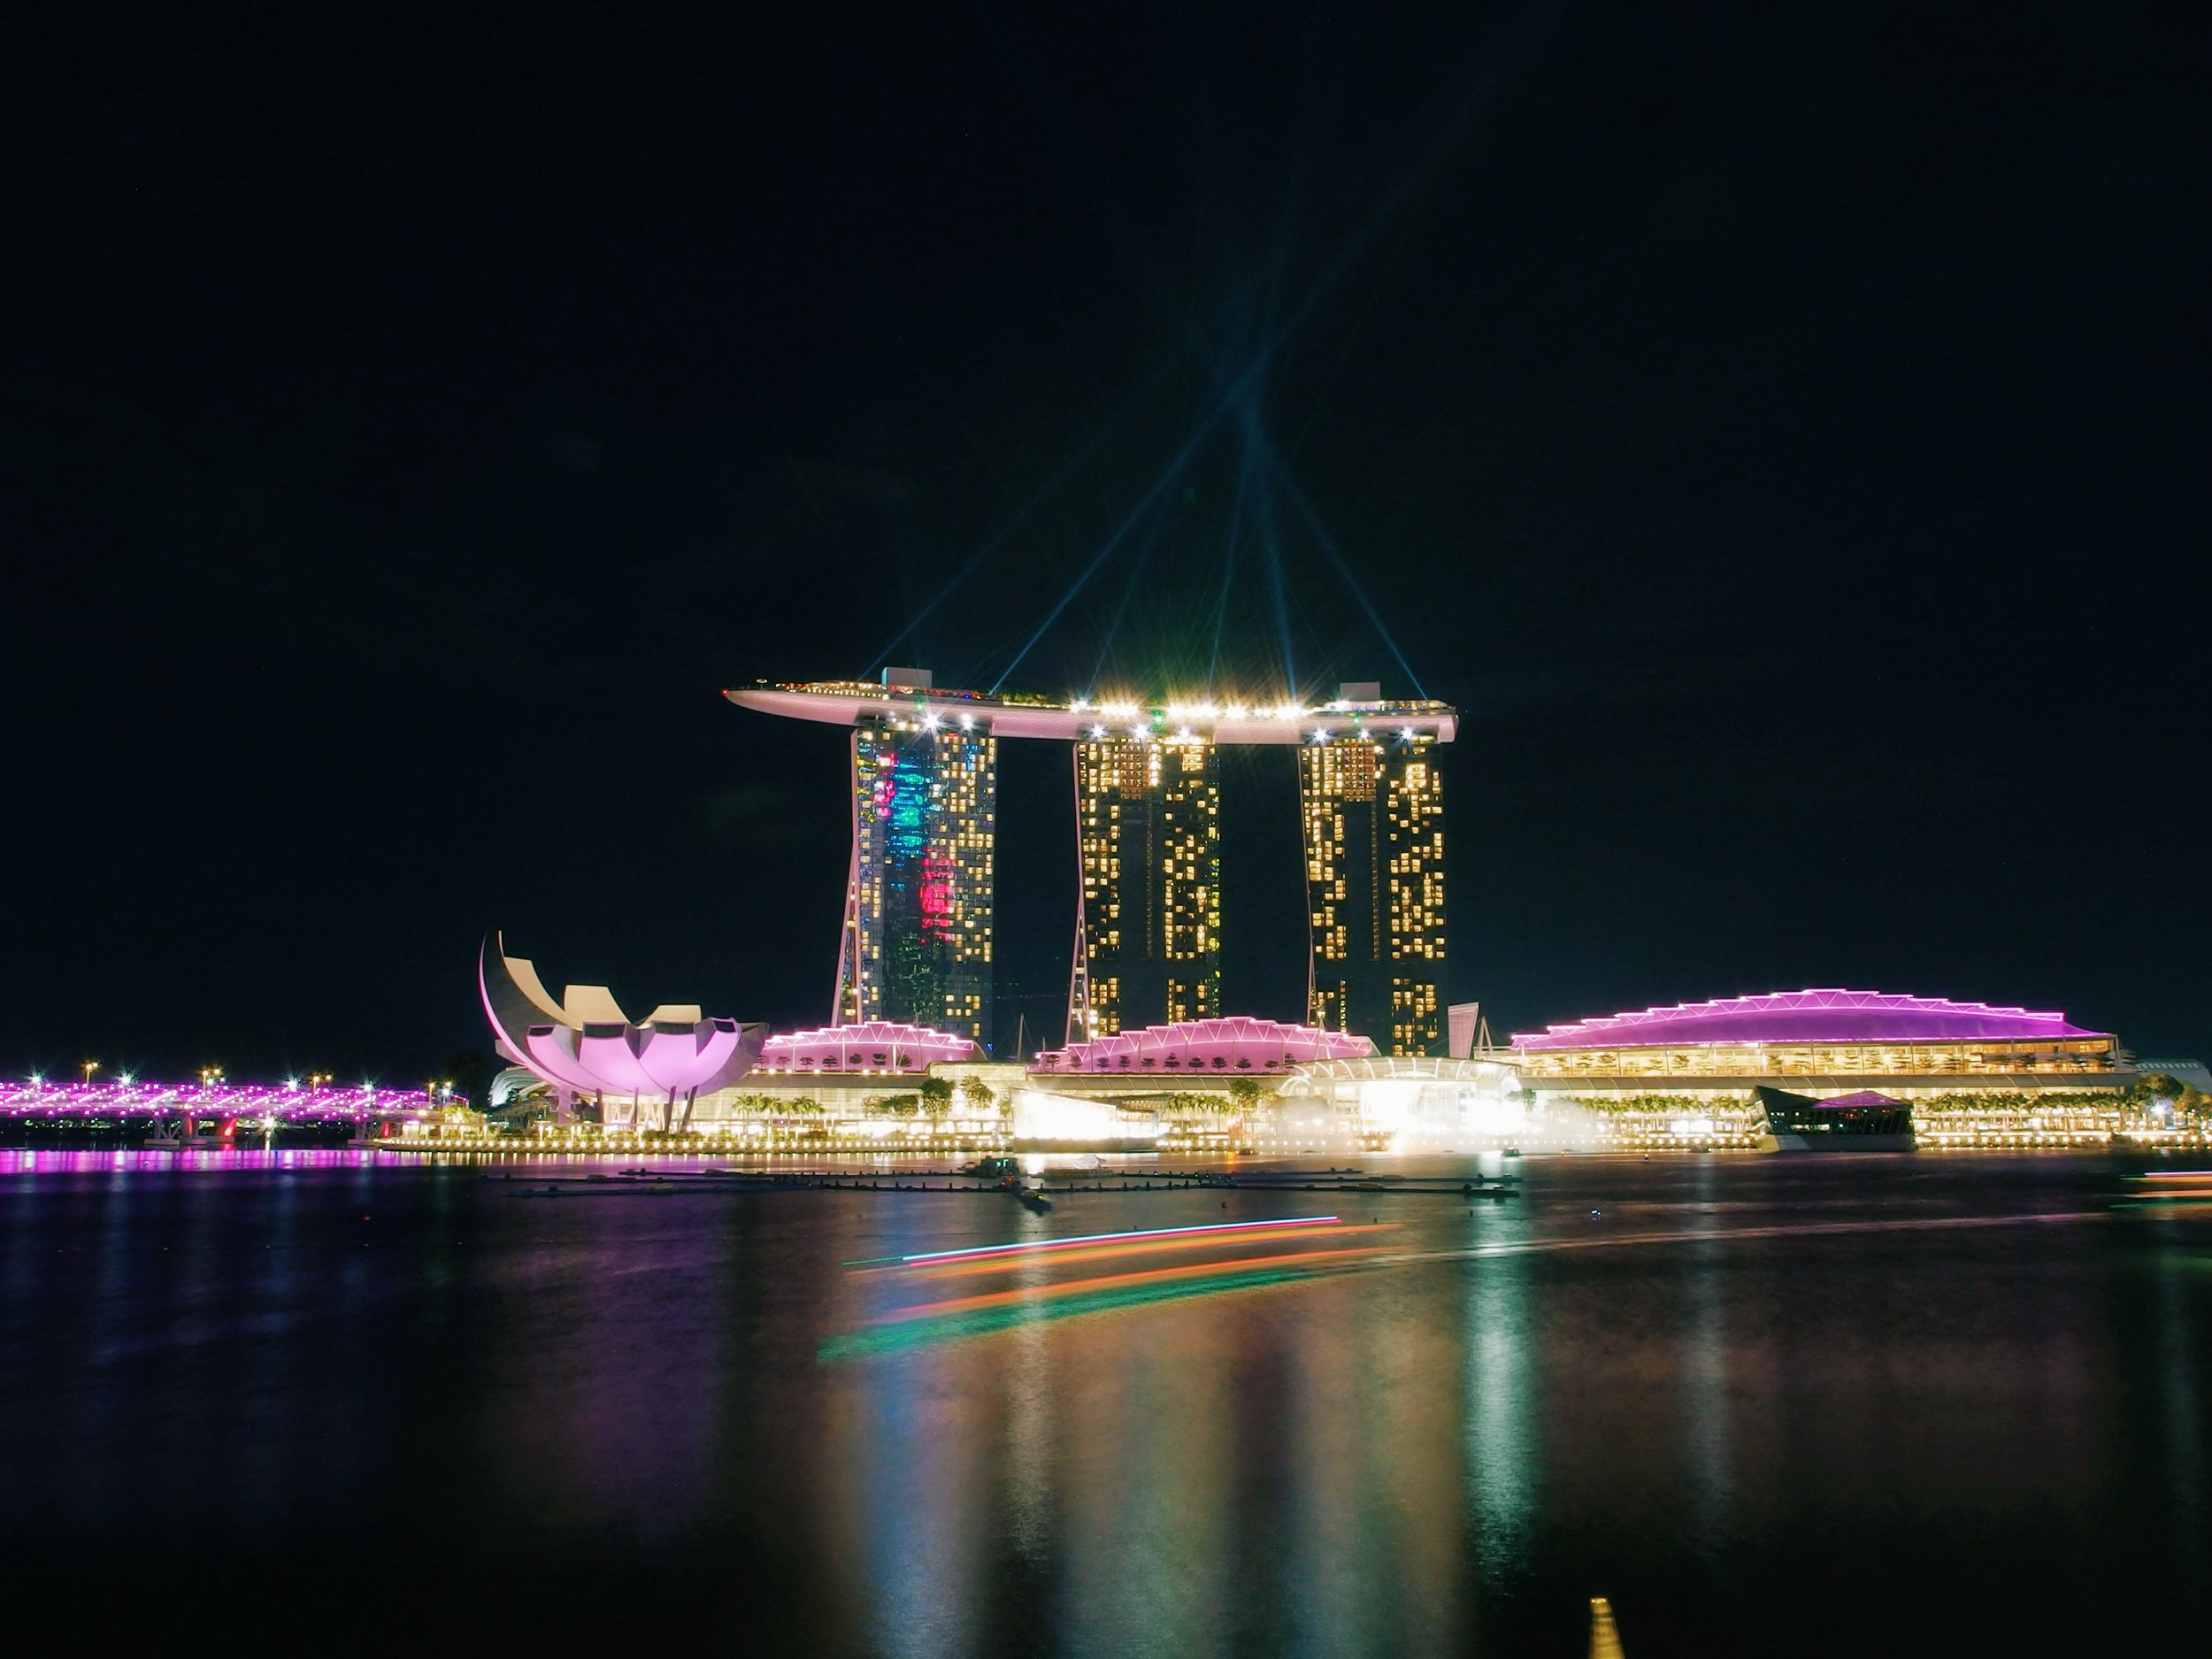 Night Lights in Singapore